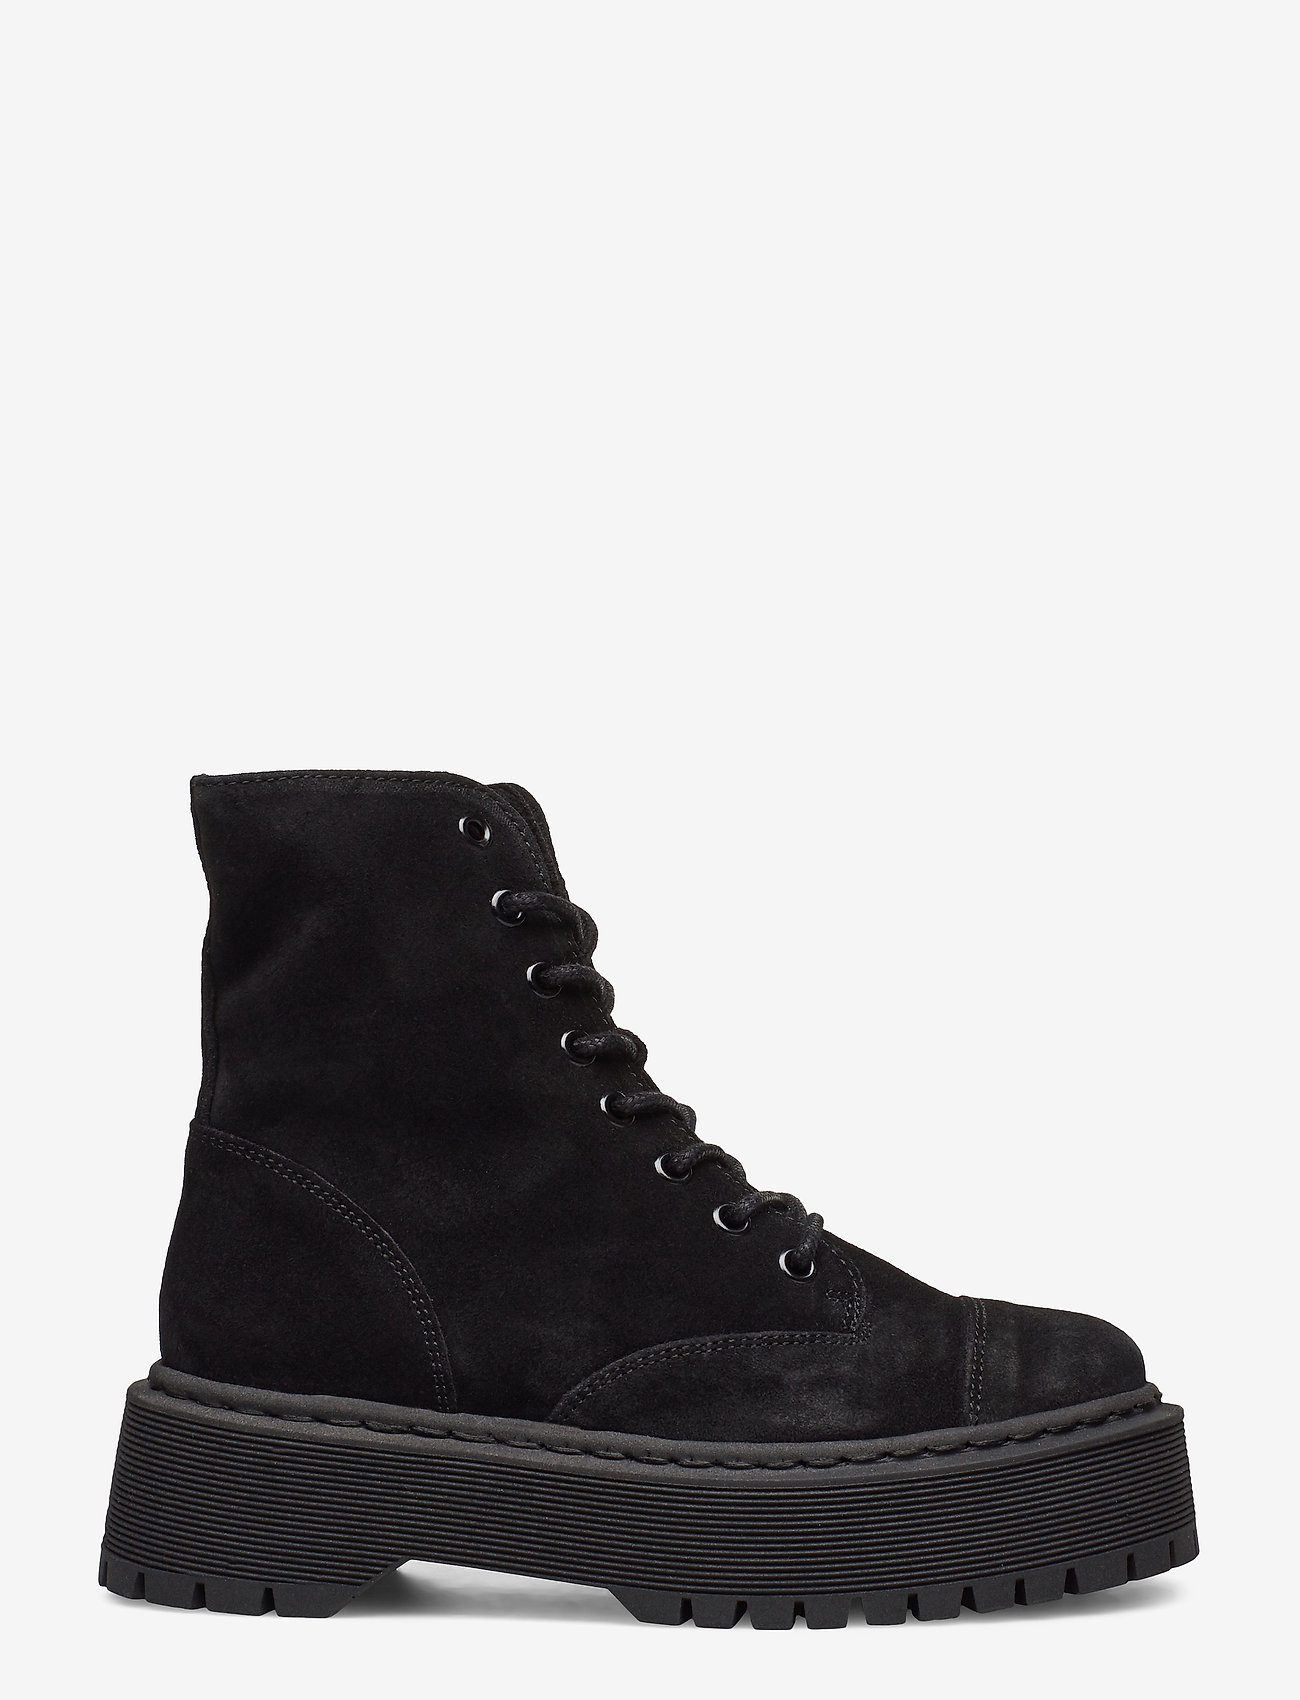 Vero Moda - VMPATH LEATHER BOOT - niski obcas - black - 1